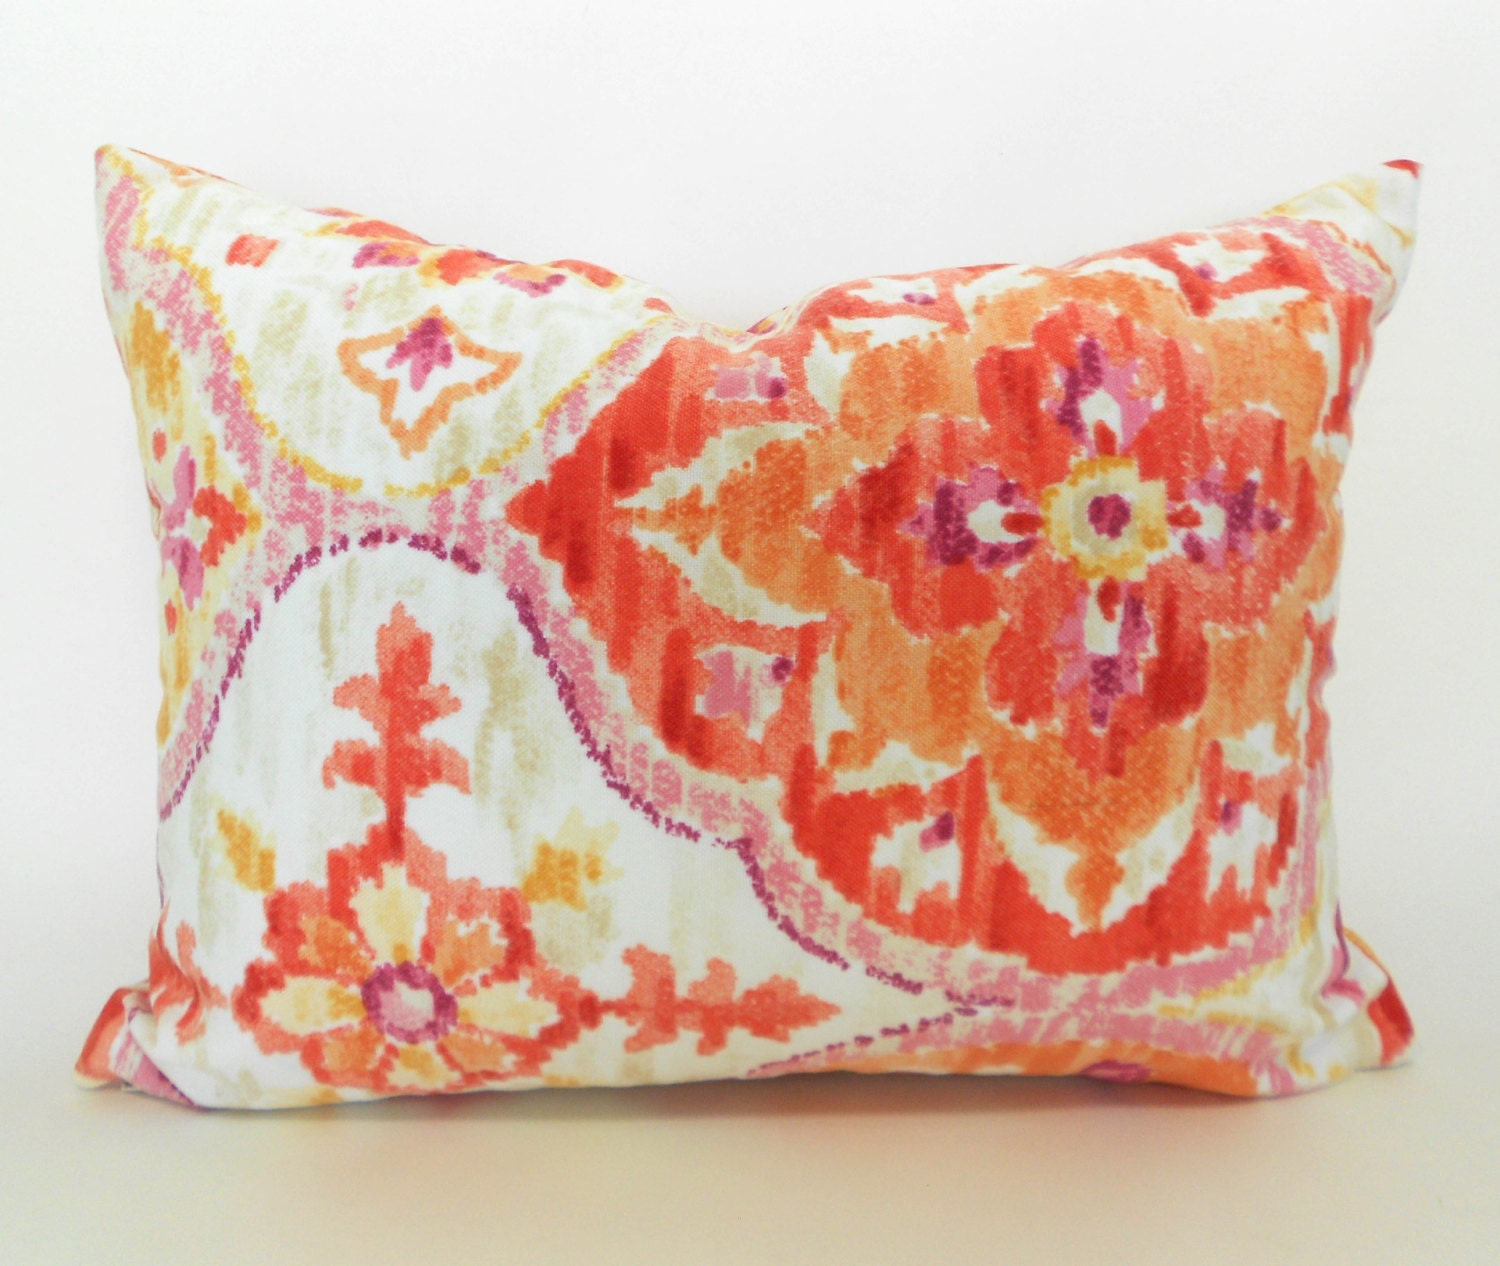 Decorative Outdoor Lumbar Pillows : Outdoor Lumbar Pillow Cover Decorative Pillows Orange Pillow